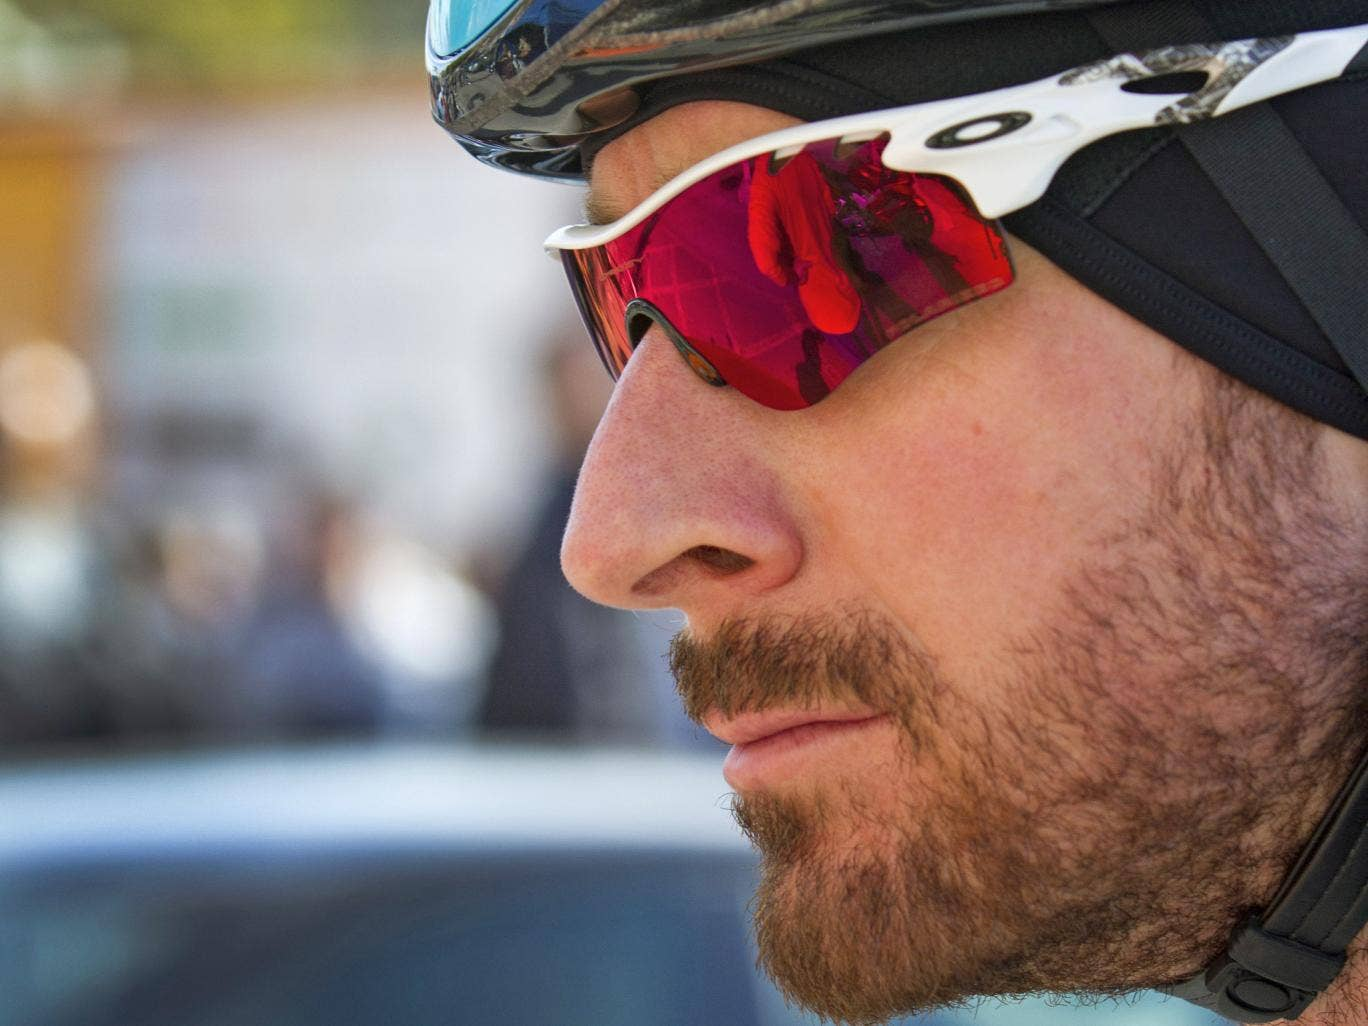 Bradley Wiggins (pictured) says he wants to take some of the pressure off Chris Froome in this year's Tour de France